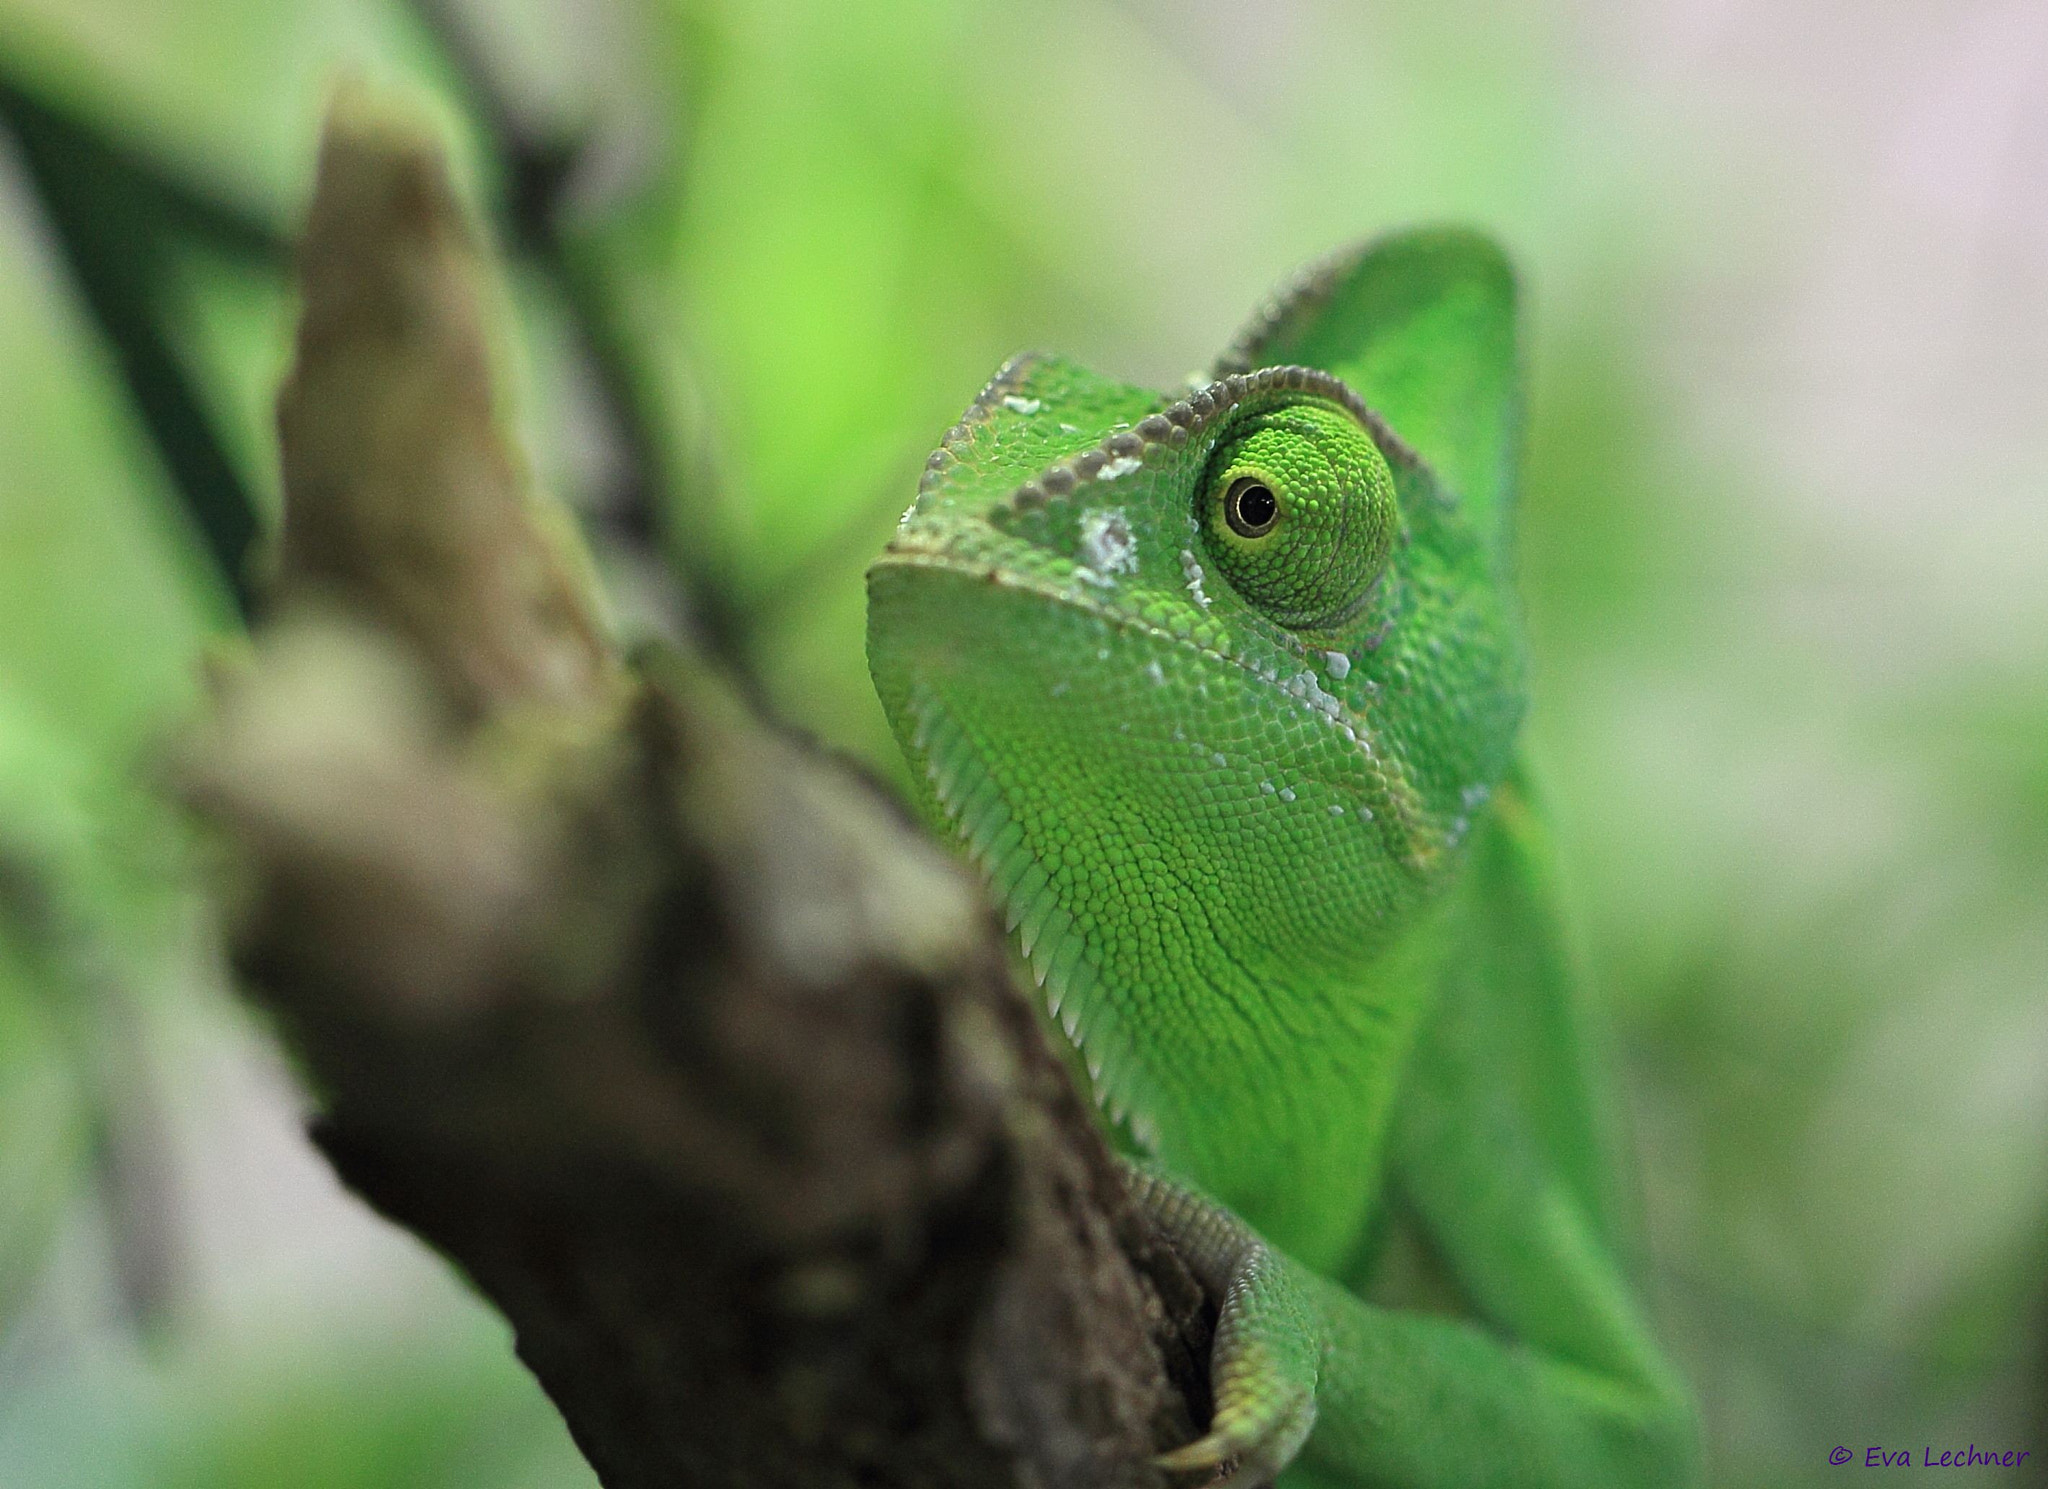 Photograph Chameleon by Eva Lechner on 500px